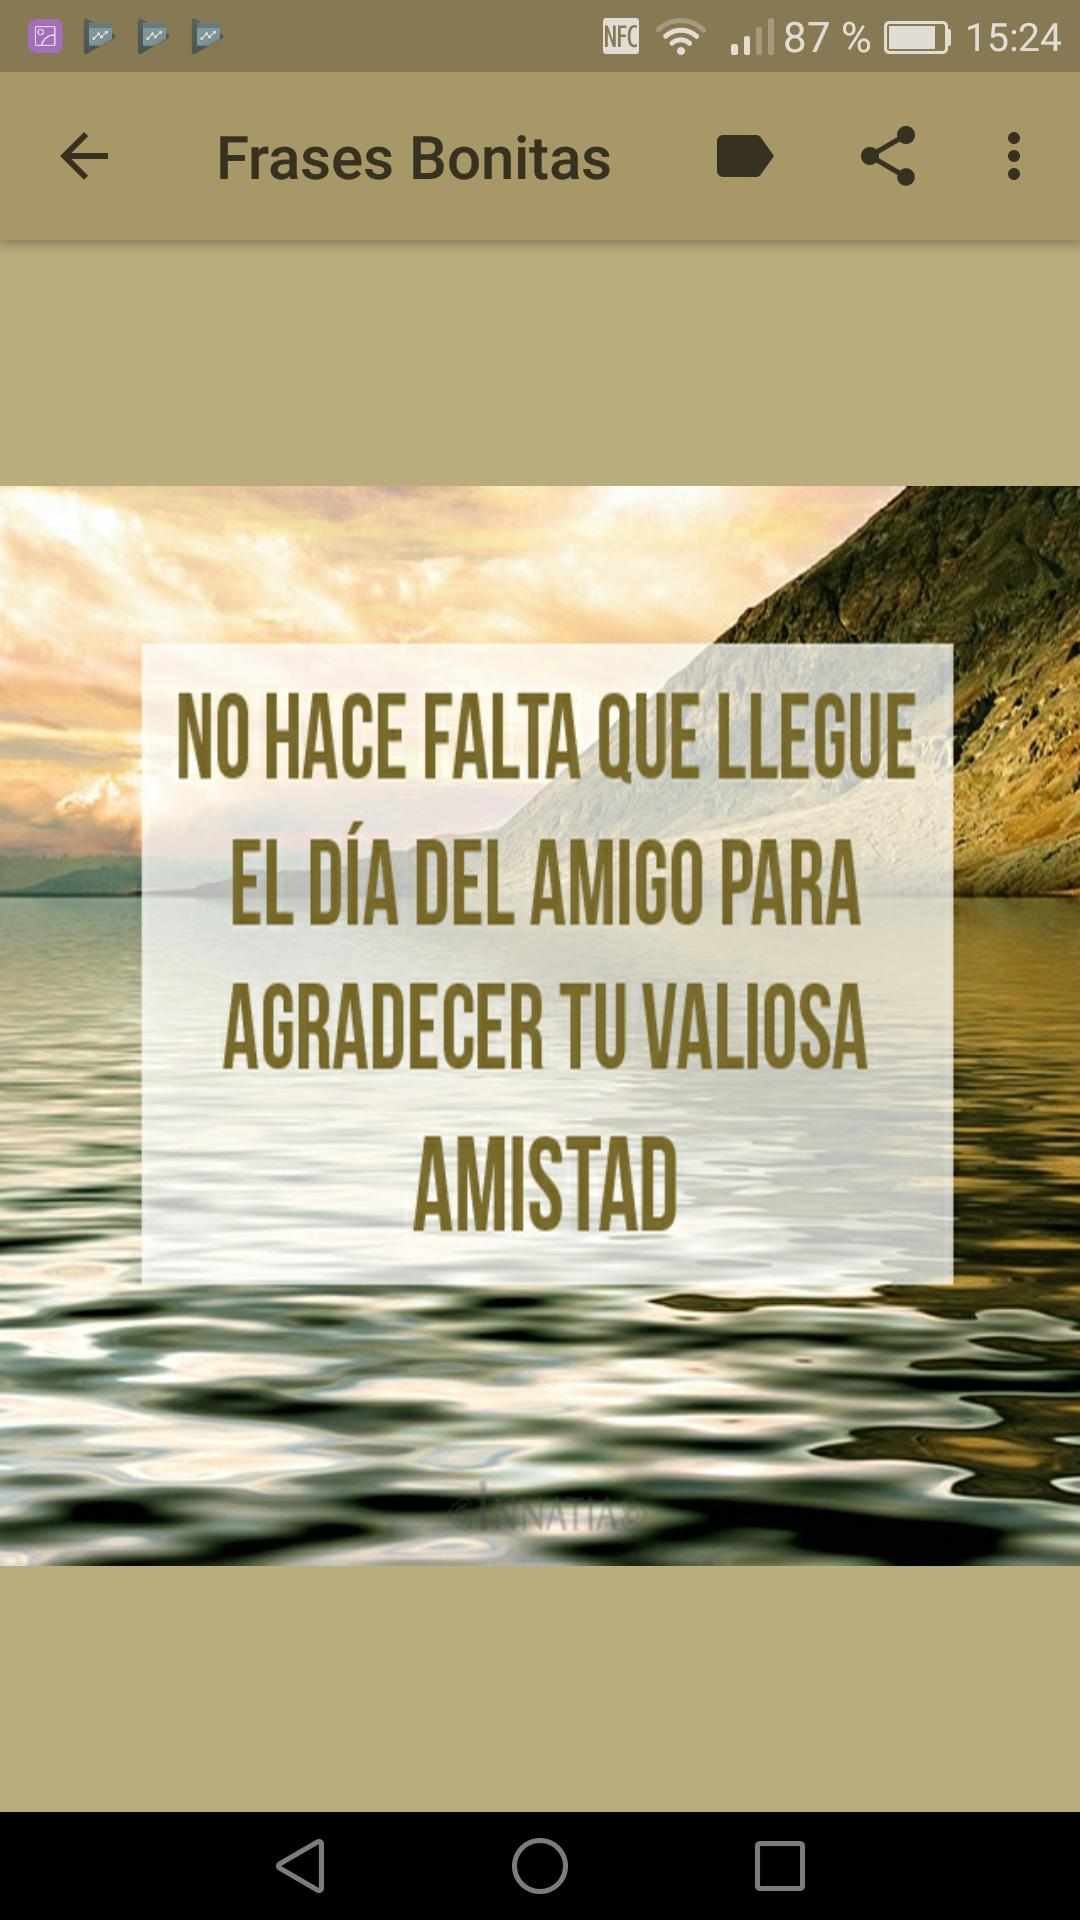 Frases Bonitas De Agradecimiento For Android Apk Download